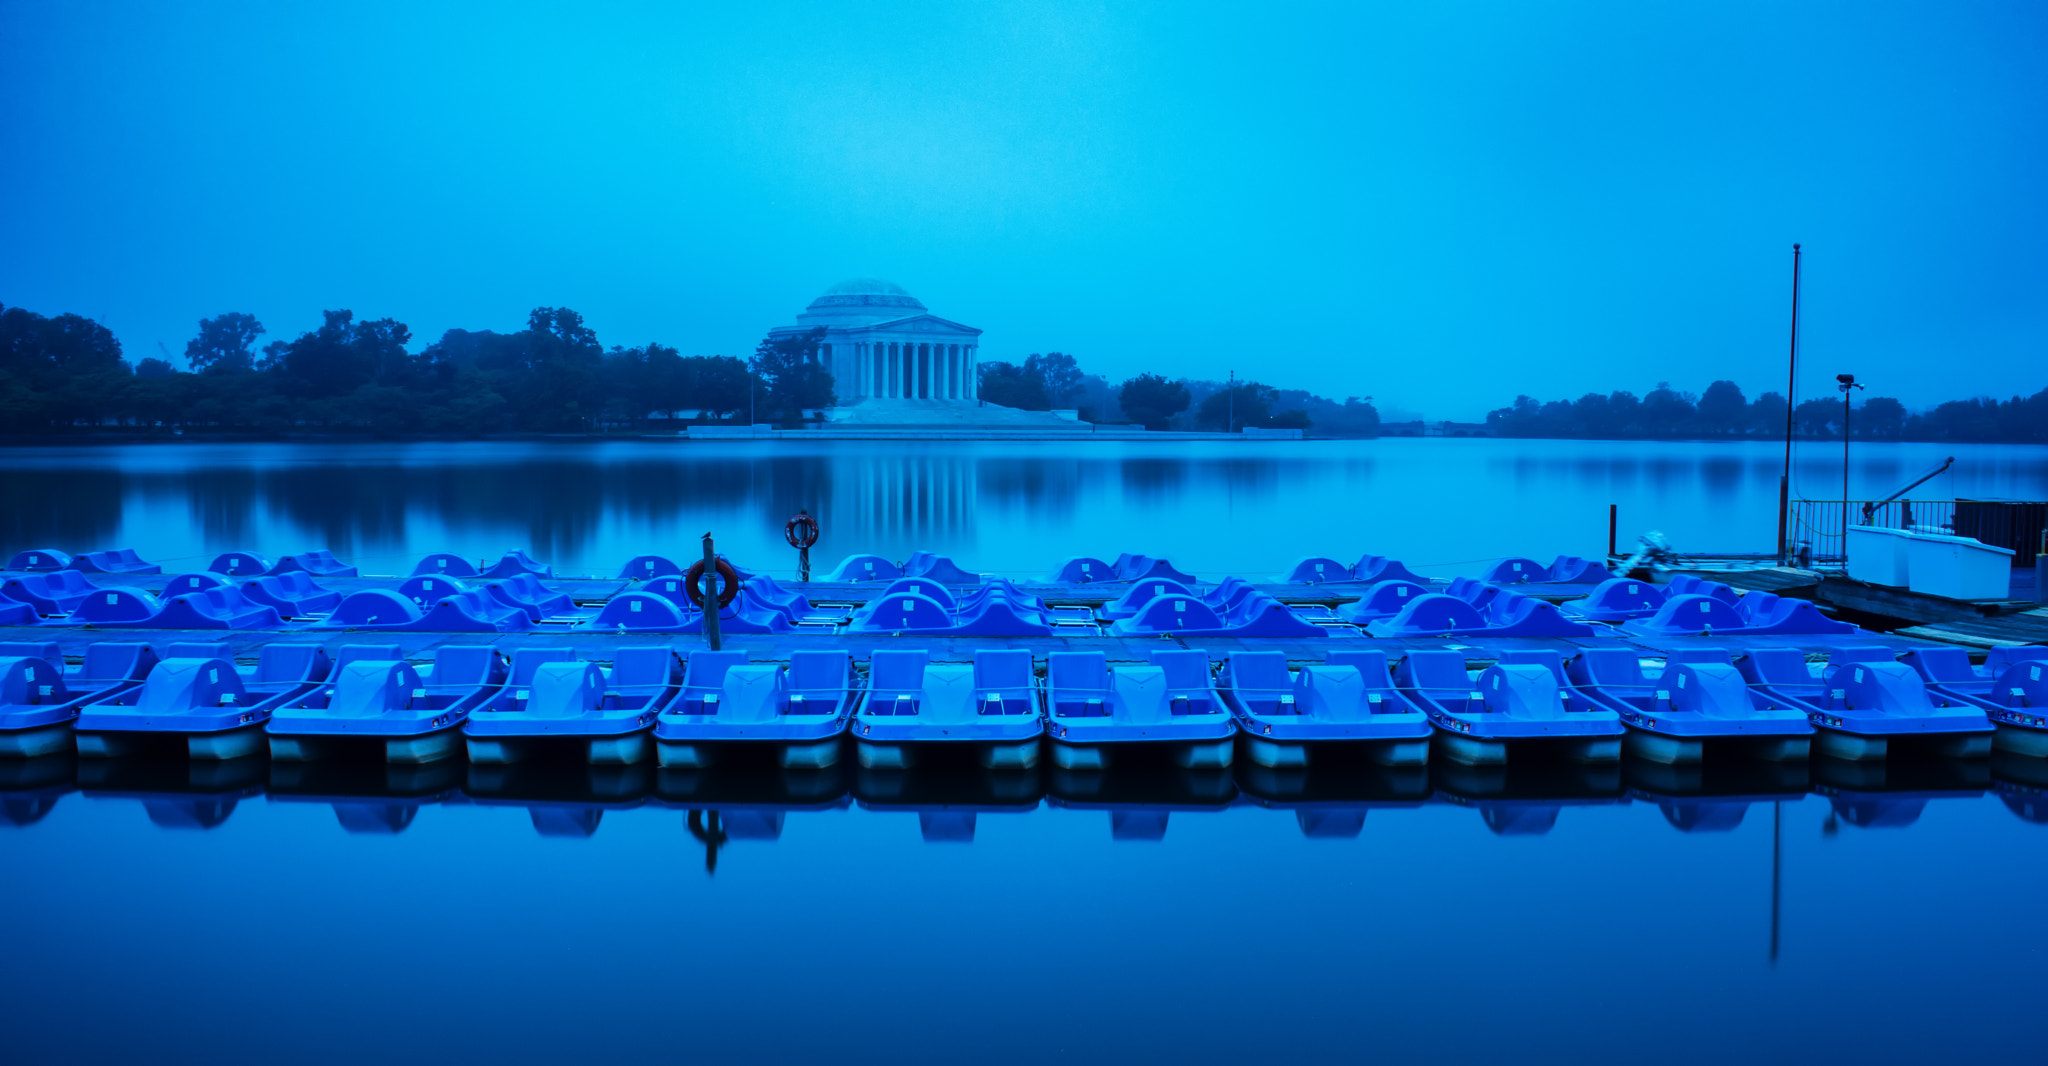 Photograph Too Early for Boats by Dan Goldberger on 500px